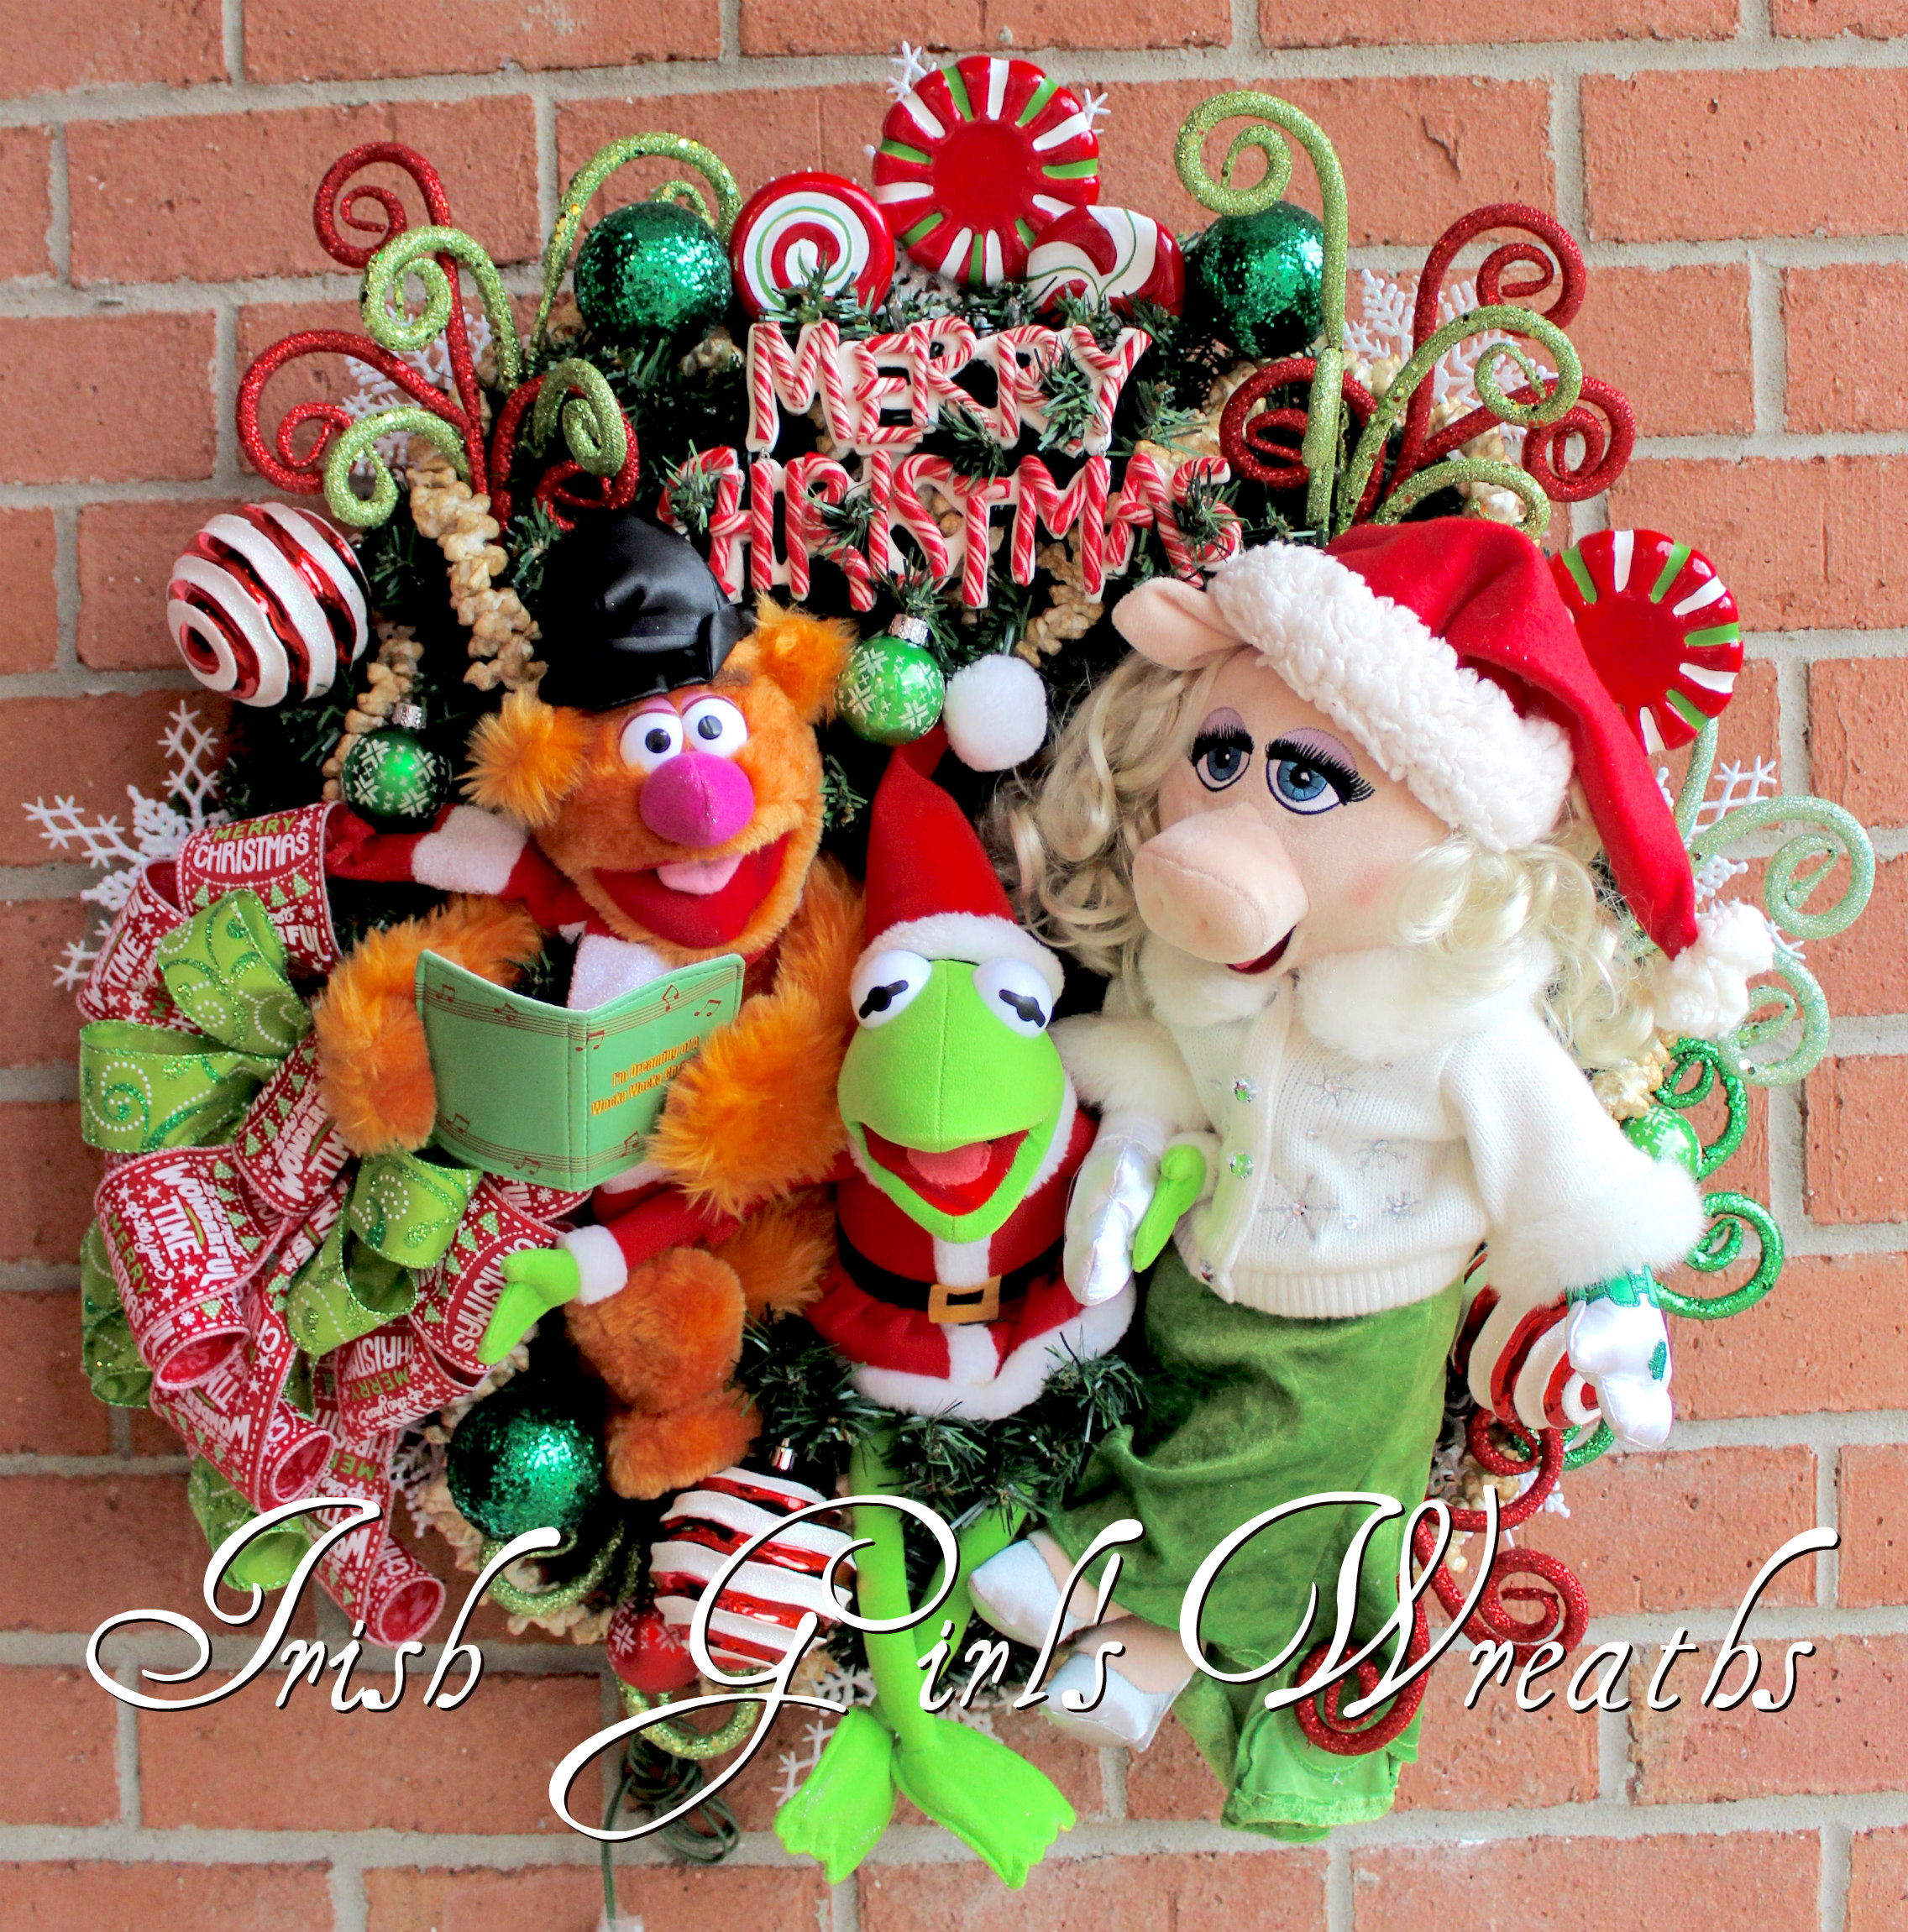 Magnificent Muppets Merry Christmas Wreath pre-lit, Peppermint, Fozzie Bear, Kermit the Frog, Miss Piggy, Popcorn garland, Peppermint